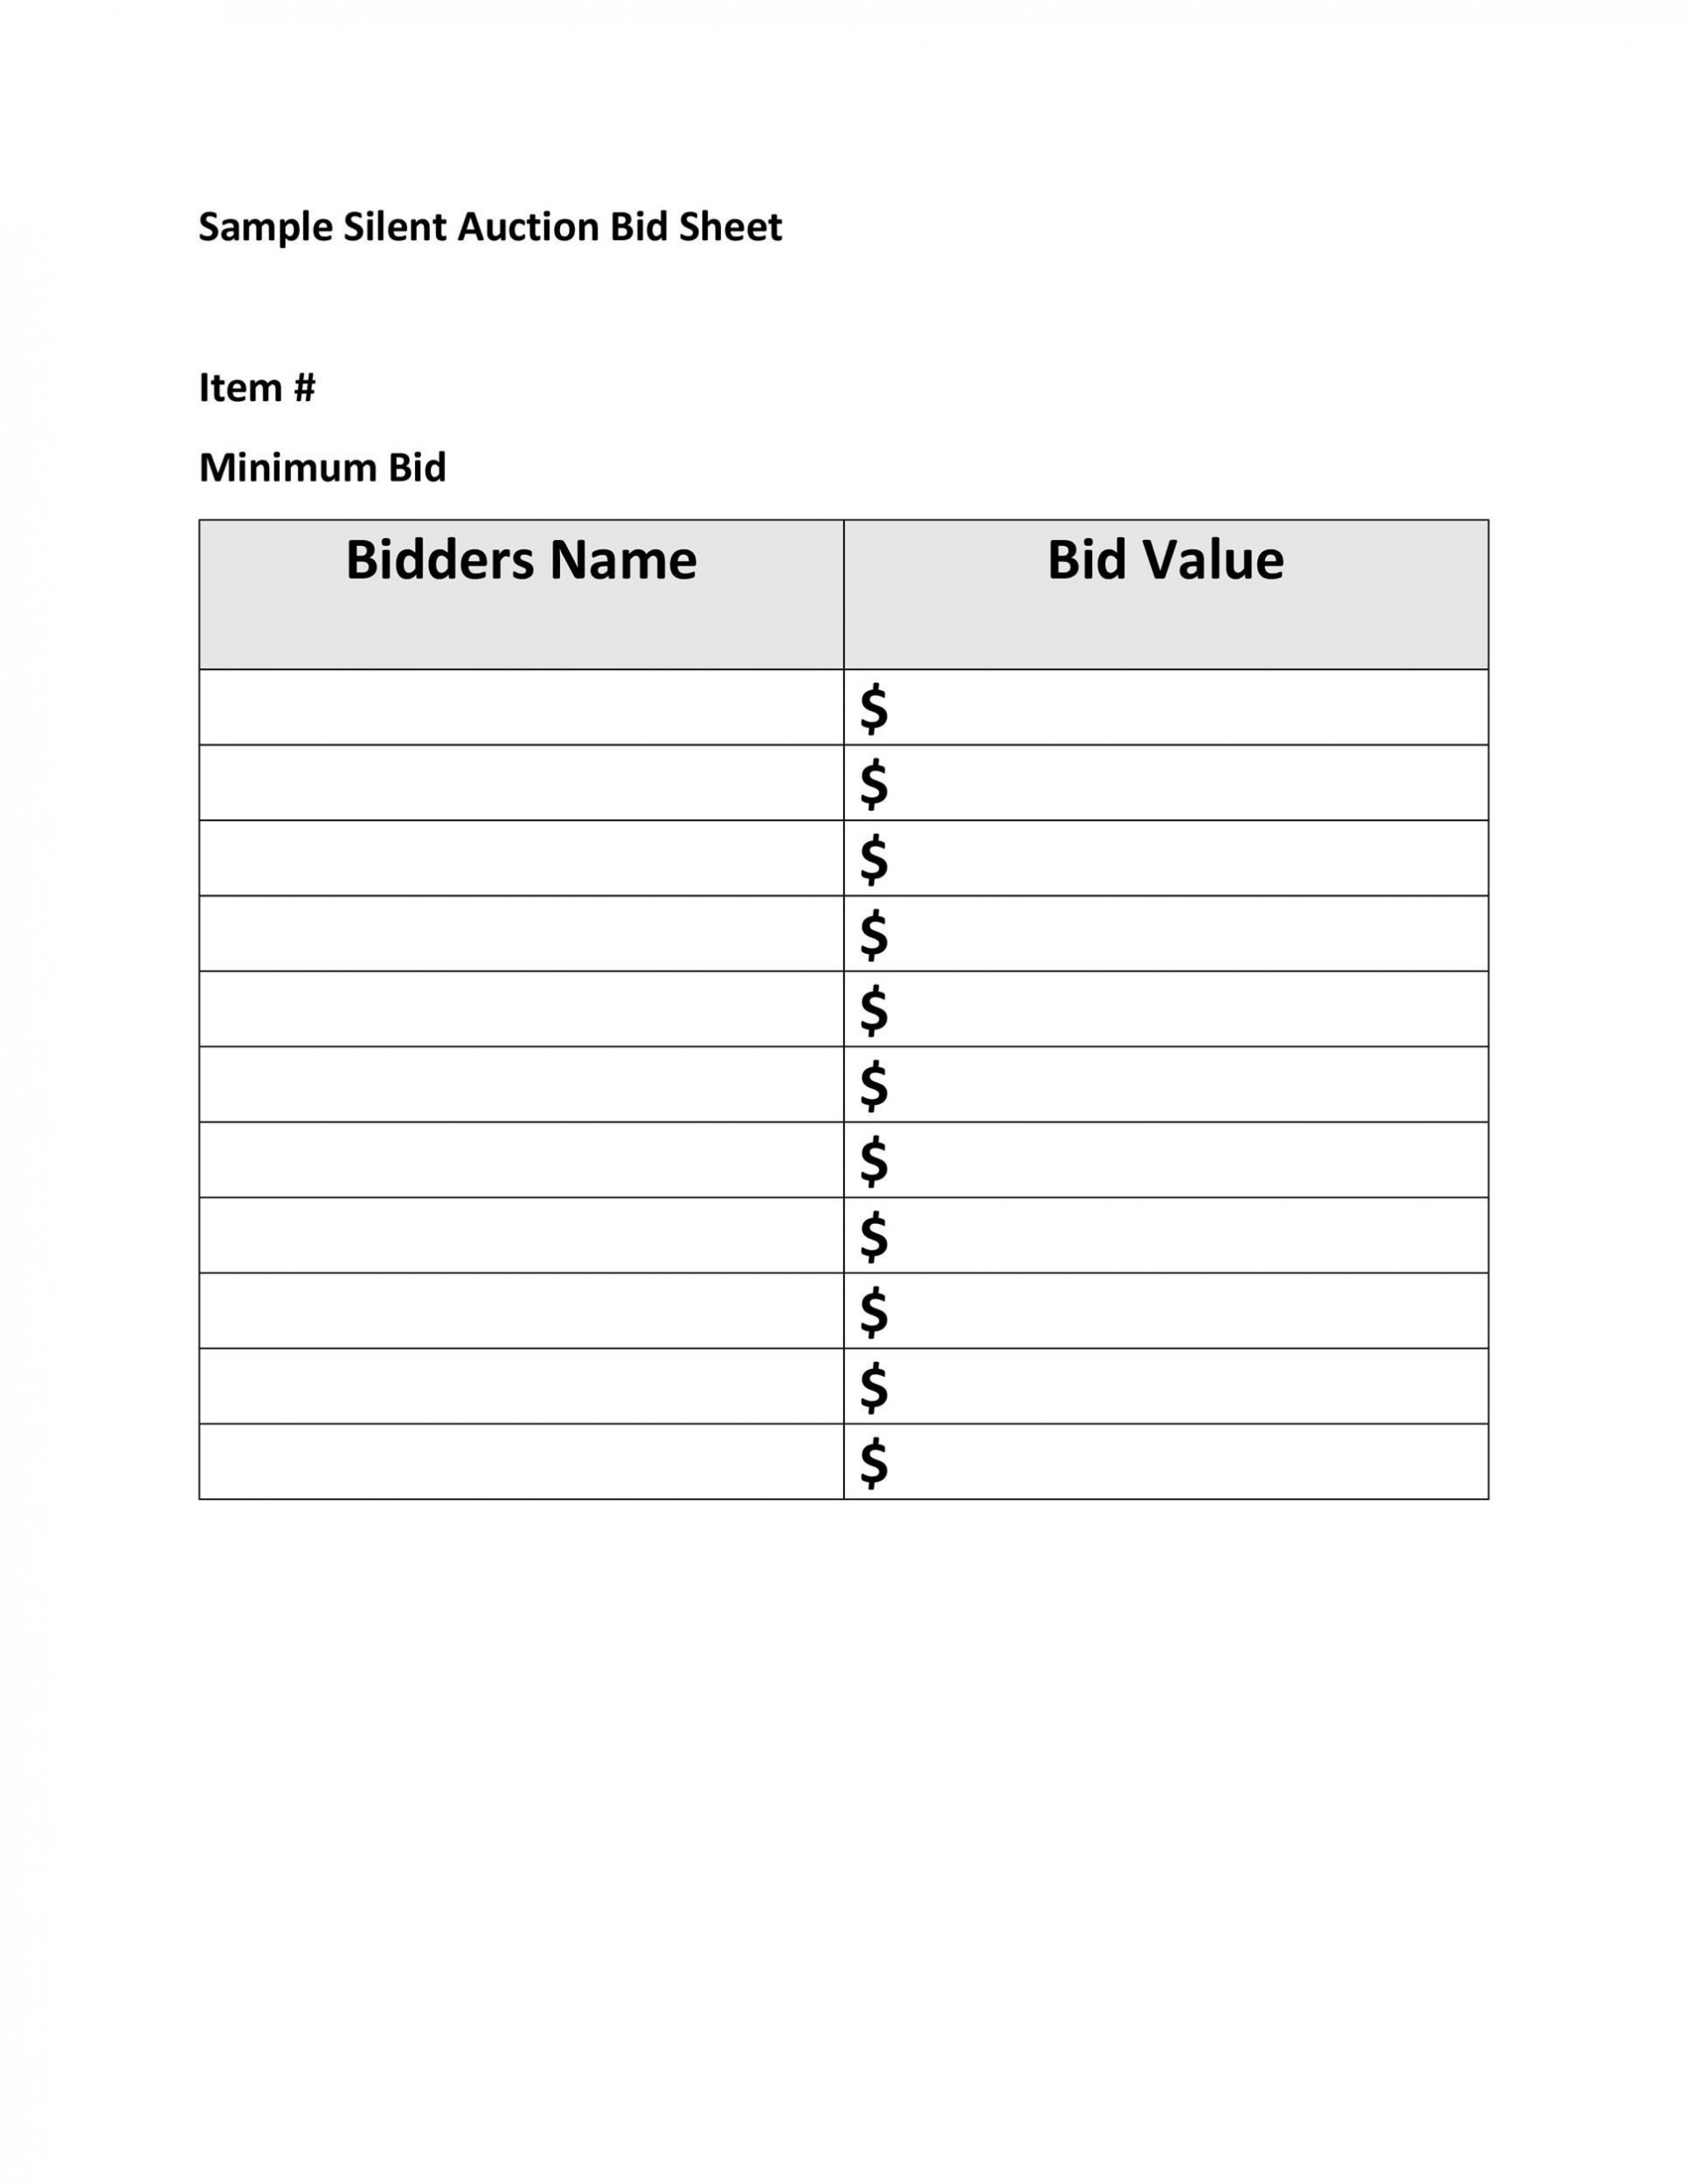 008 Wonderful Silent Auction Bid Sheet Template Idea  Free Download Sample Microsoft Word1920